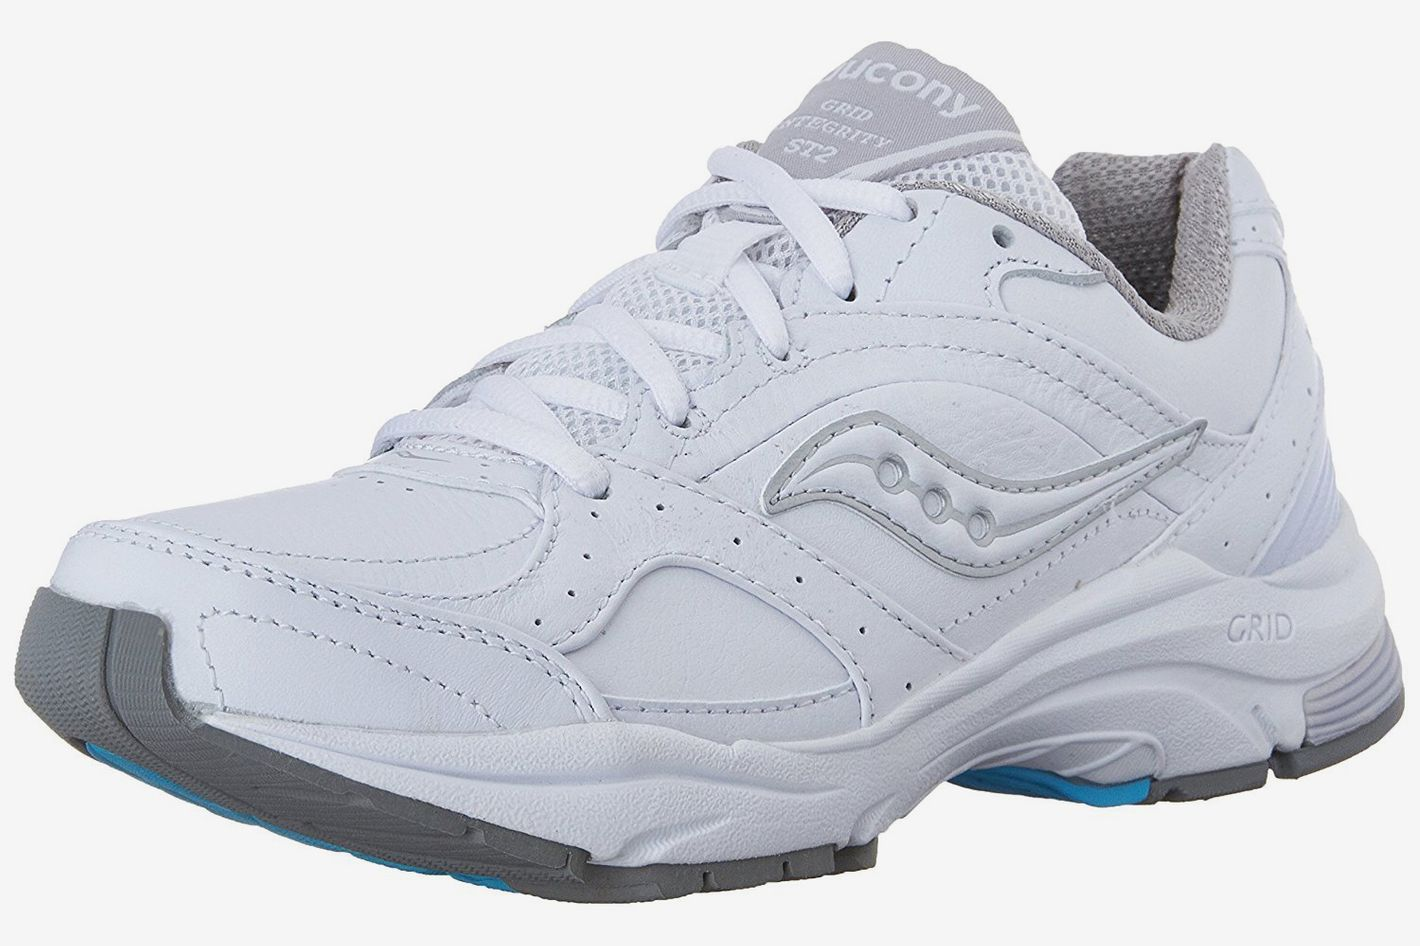 Saucony Women's Pro-Grid Walking Shoe